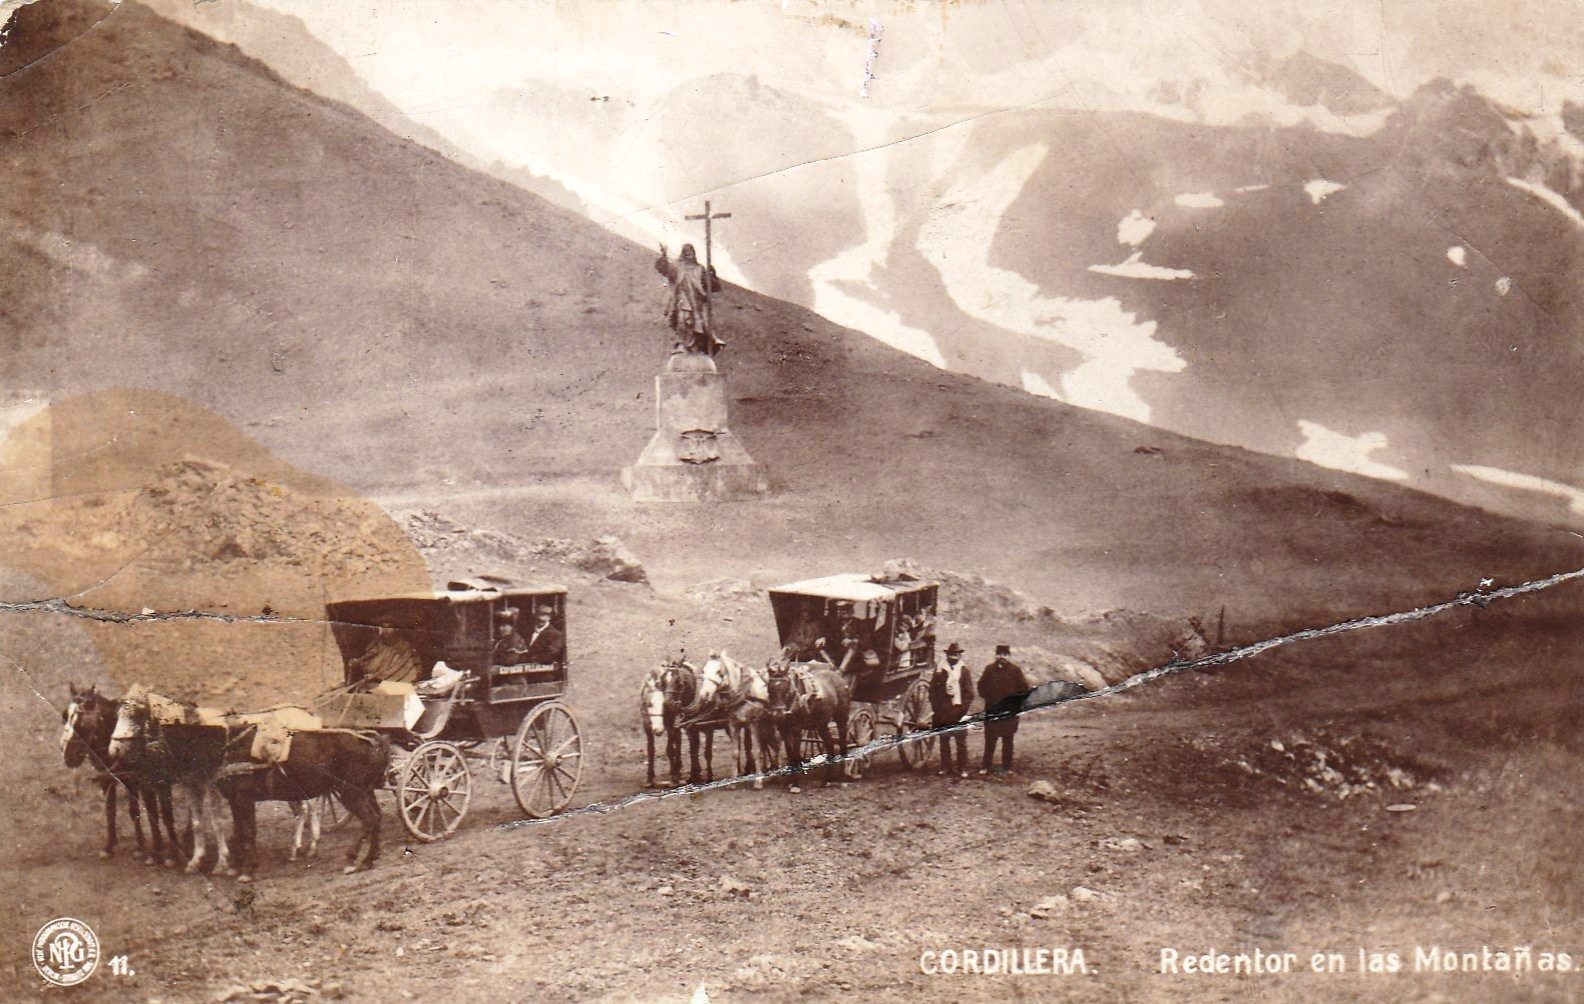 Enterreno - Fotos históricas de chile - fotos antiguas de Chile - Cristo Redentor de Los Andes en 1910